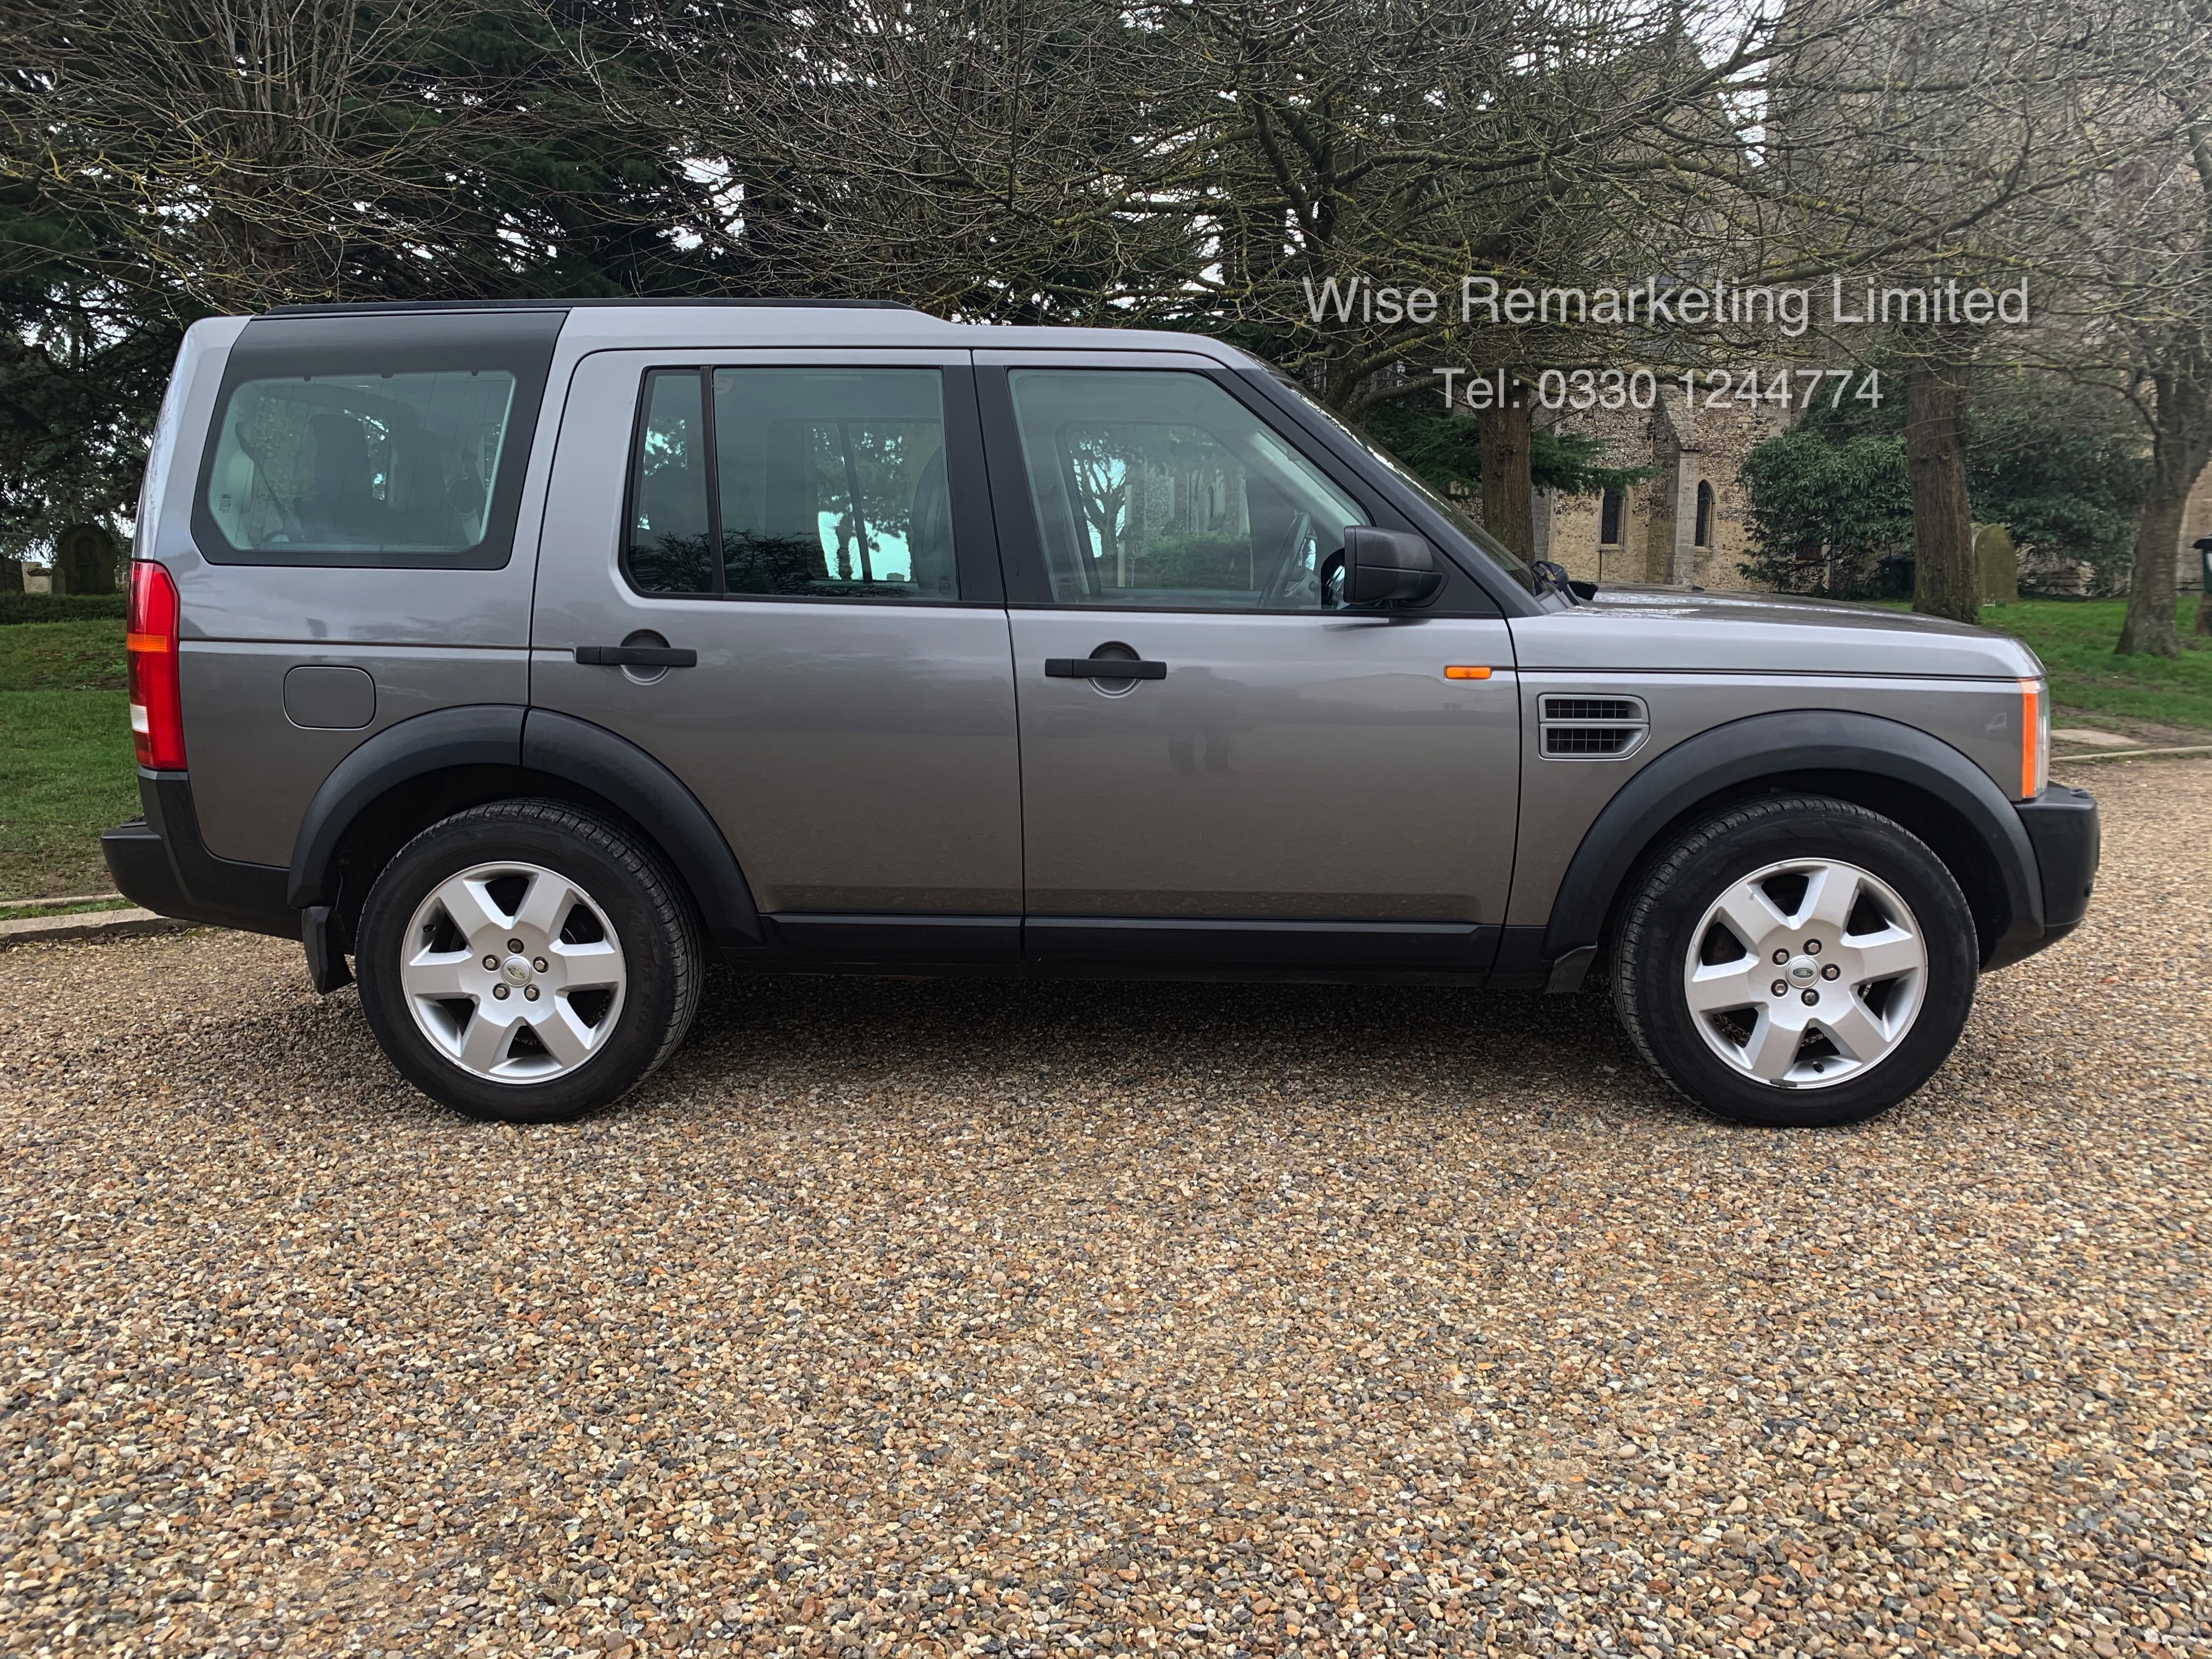 Land Rover Discovery 2.7 TDV6 HSE - Automatic - 2008 Reg - Full Leather - 7 Seater - Sat Nav - - Image 7 of 31